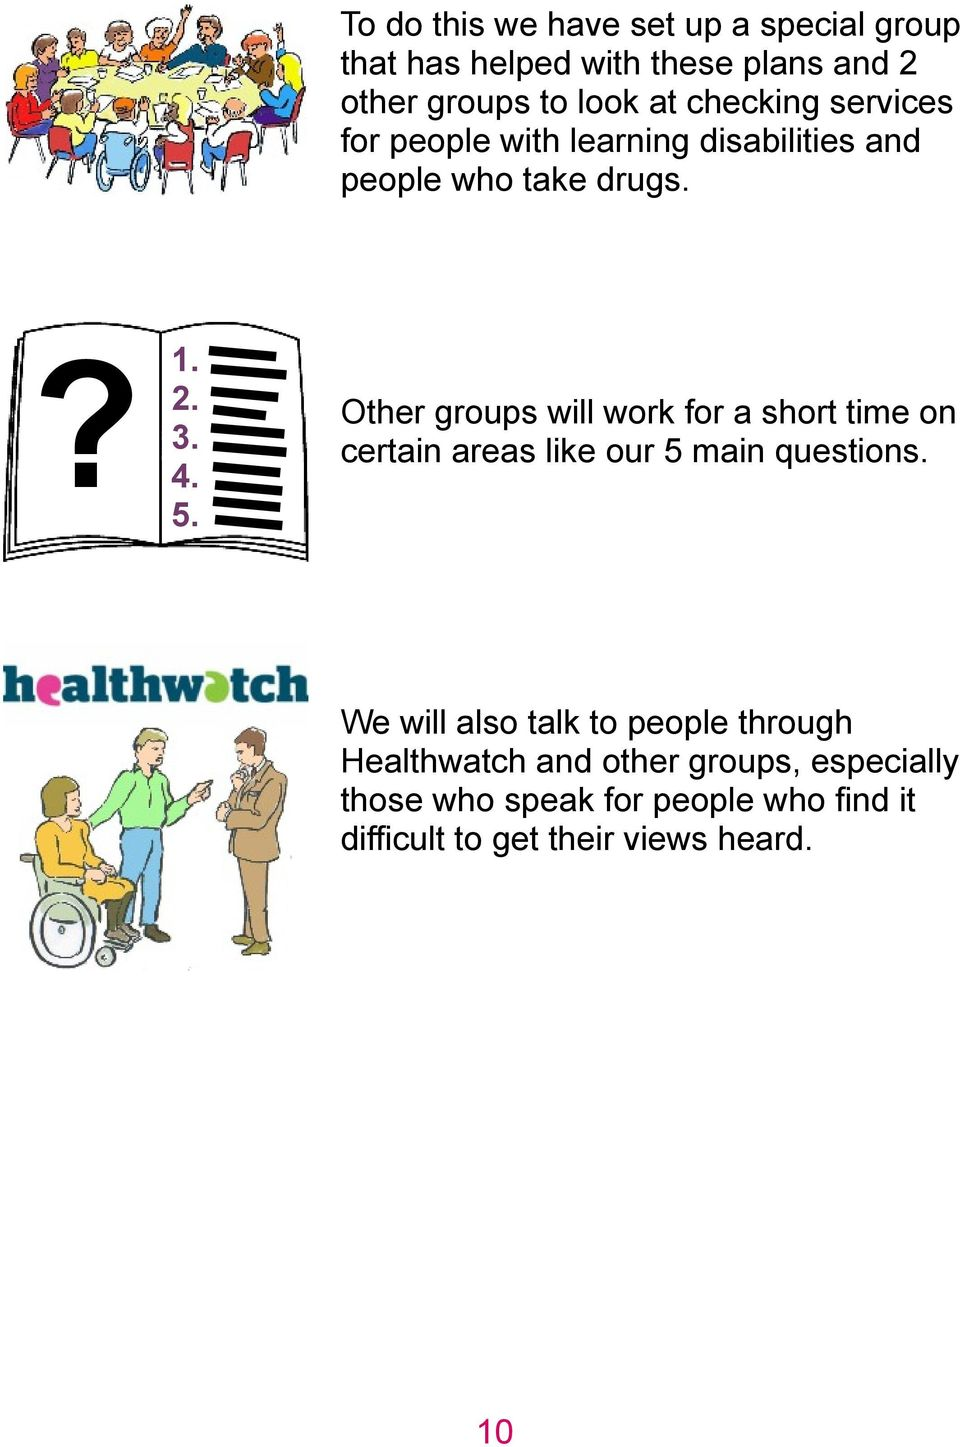 Other groups will work for a short time on certain areas like our 5 main questions.